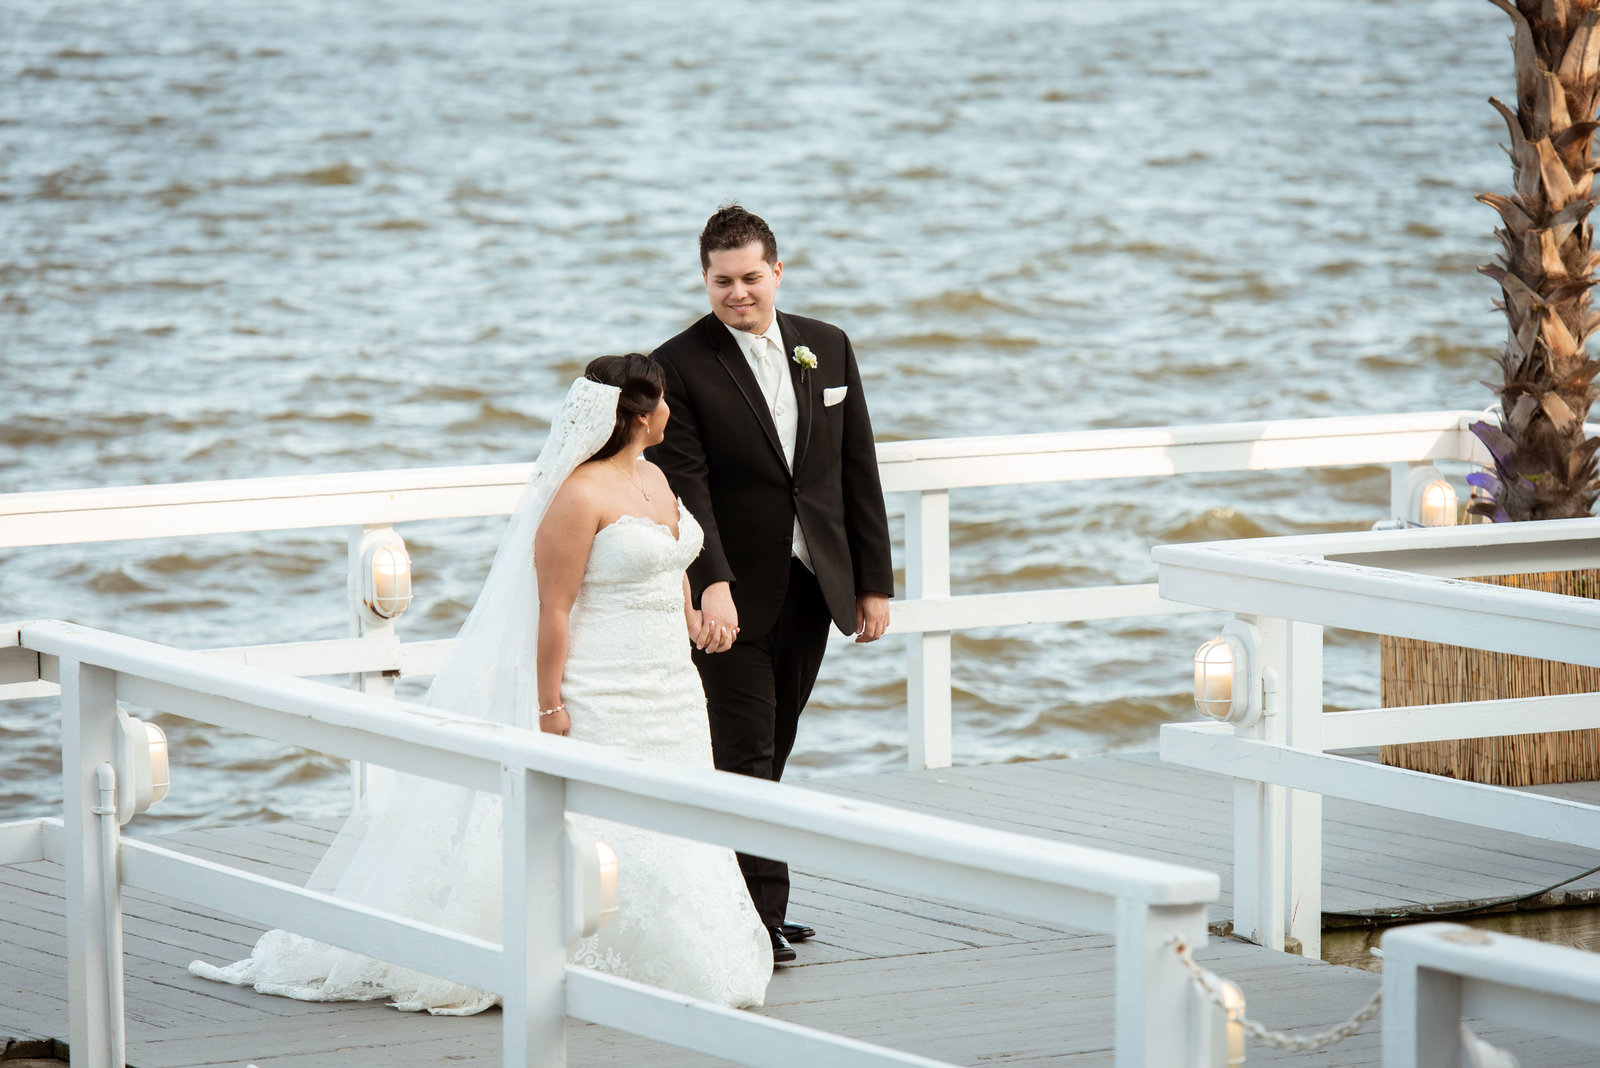 Bride and groom walking on dock at Chateau La Mer